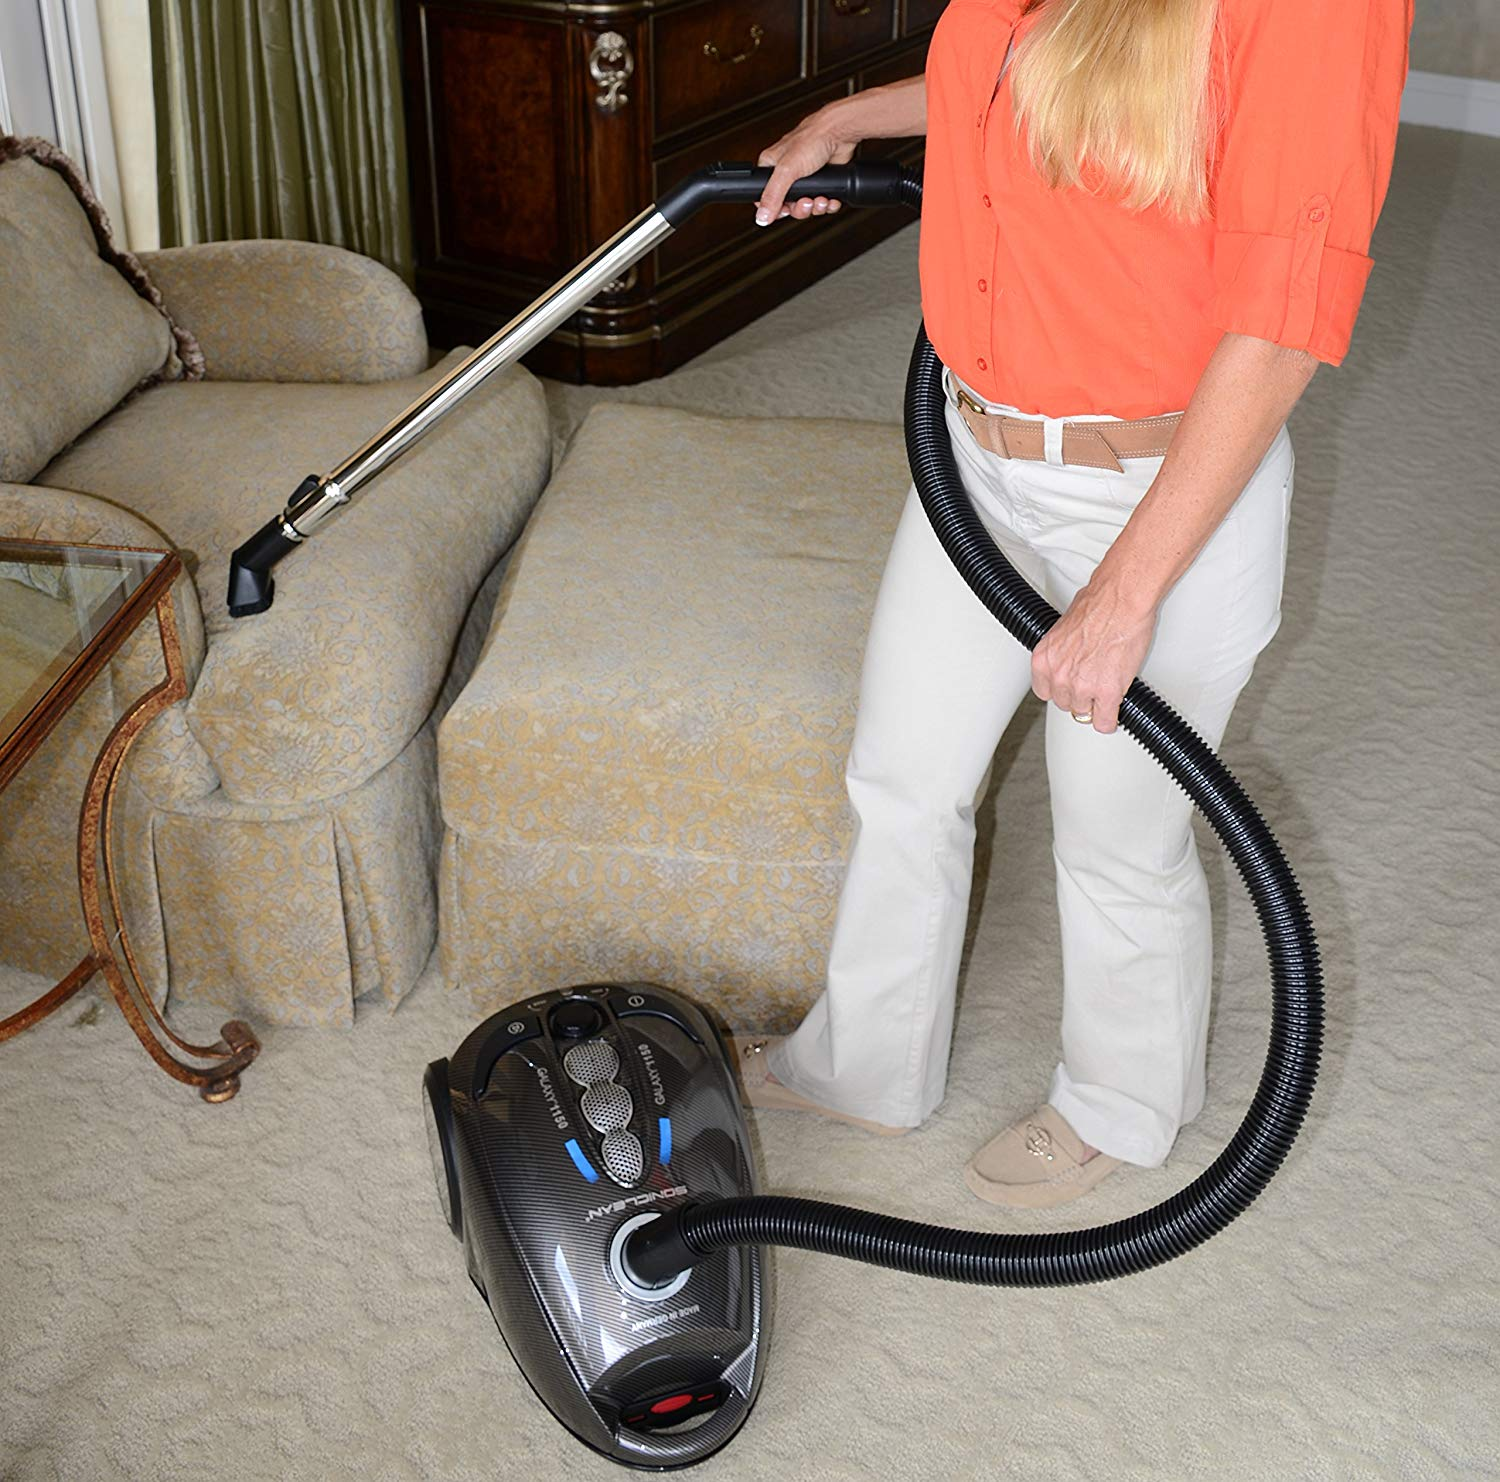 Soniclean Galaxy 1150 Canister Vacuum